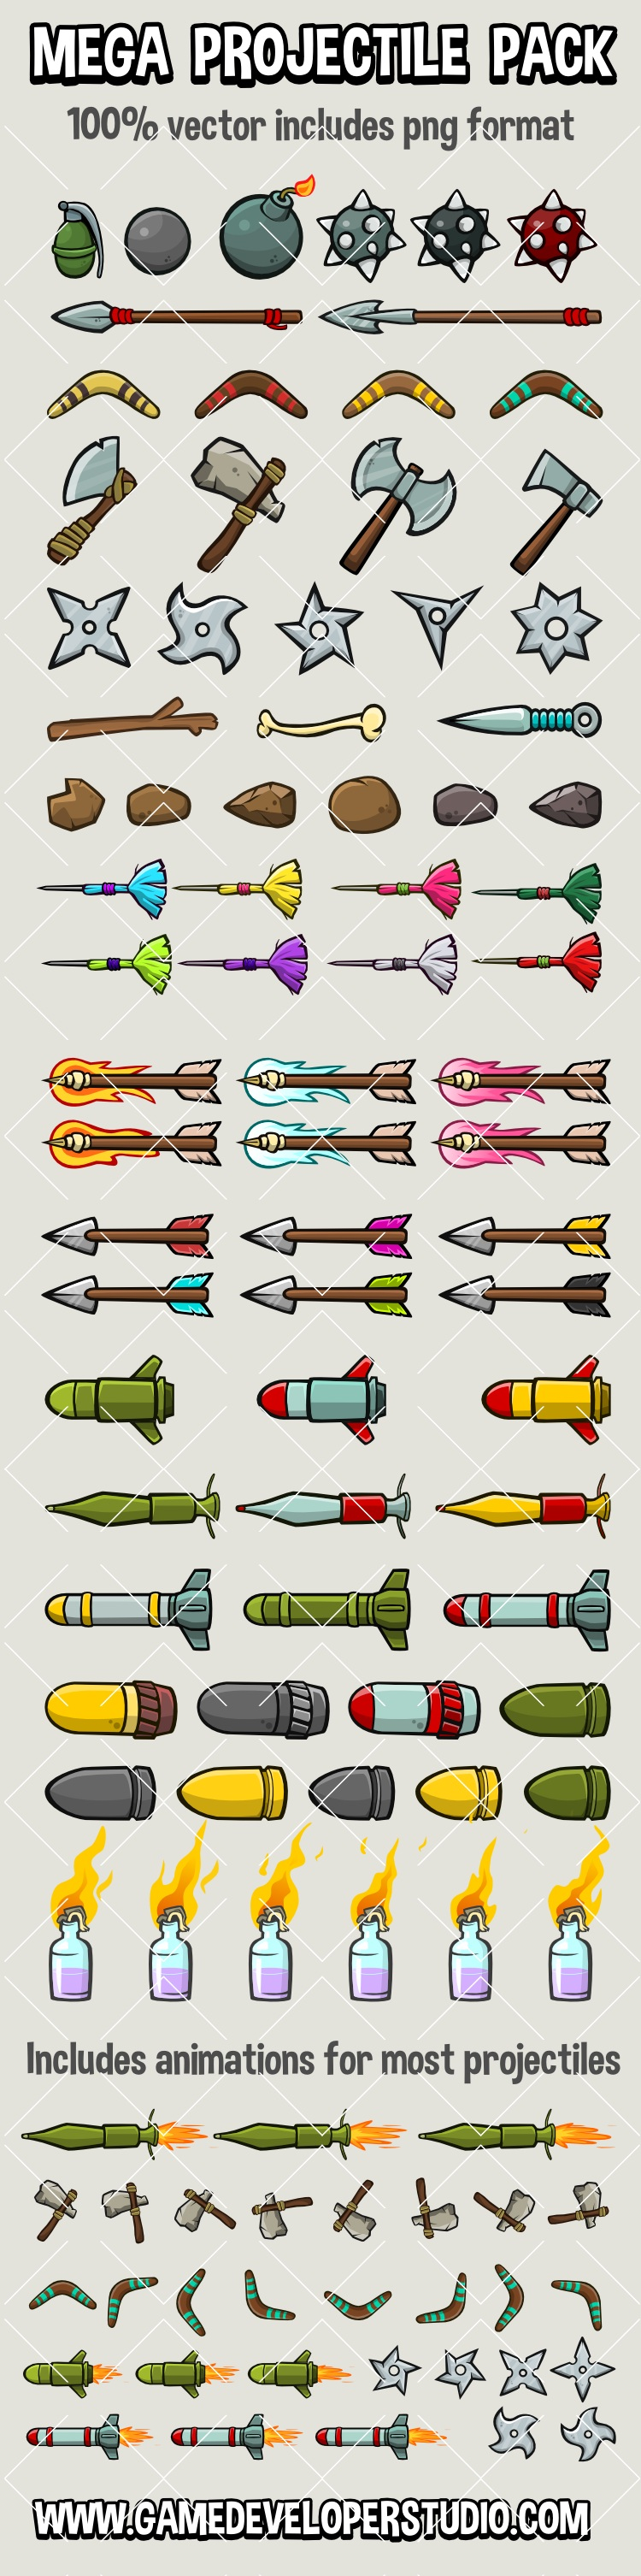 Projectiles for 2d games mega pack